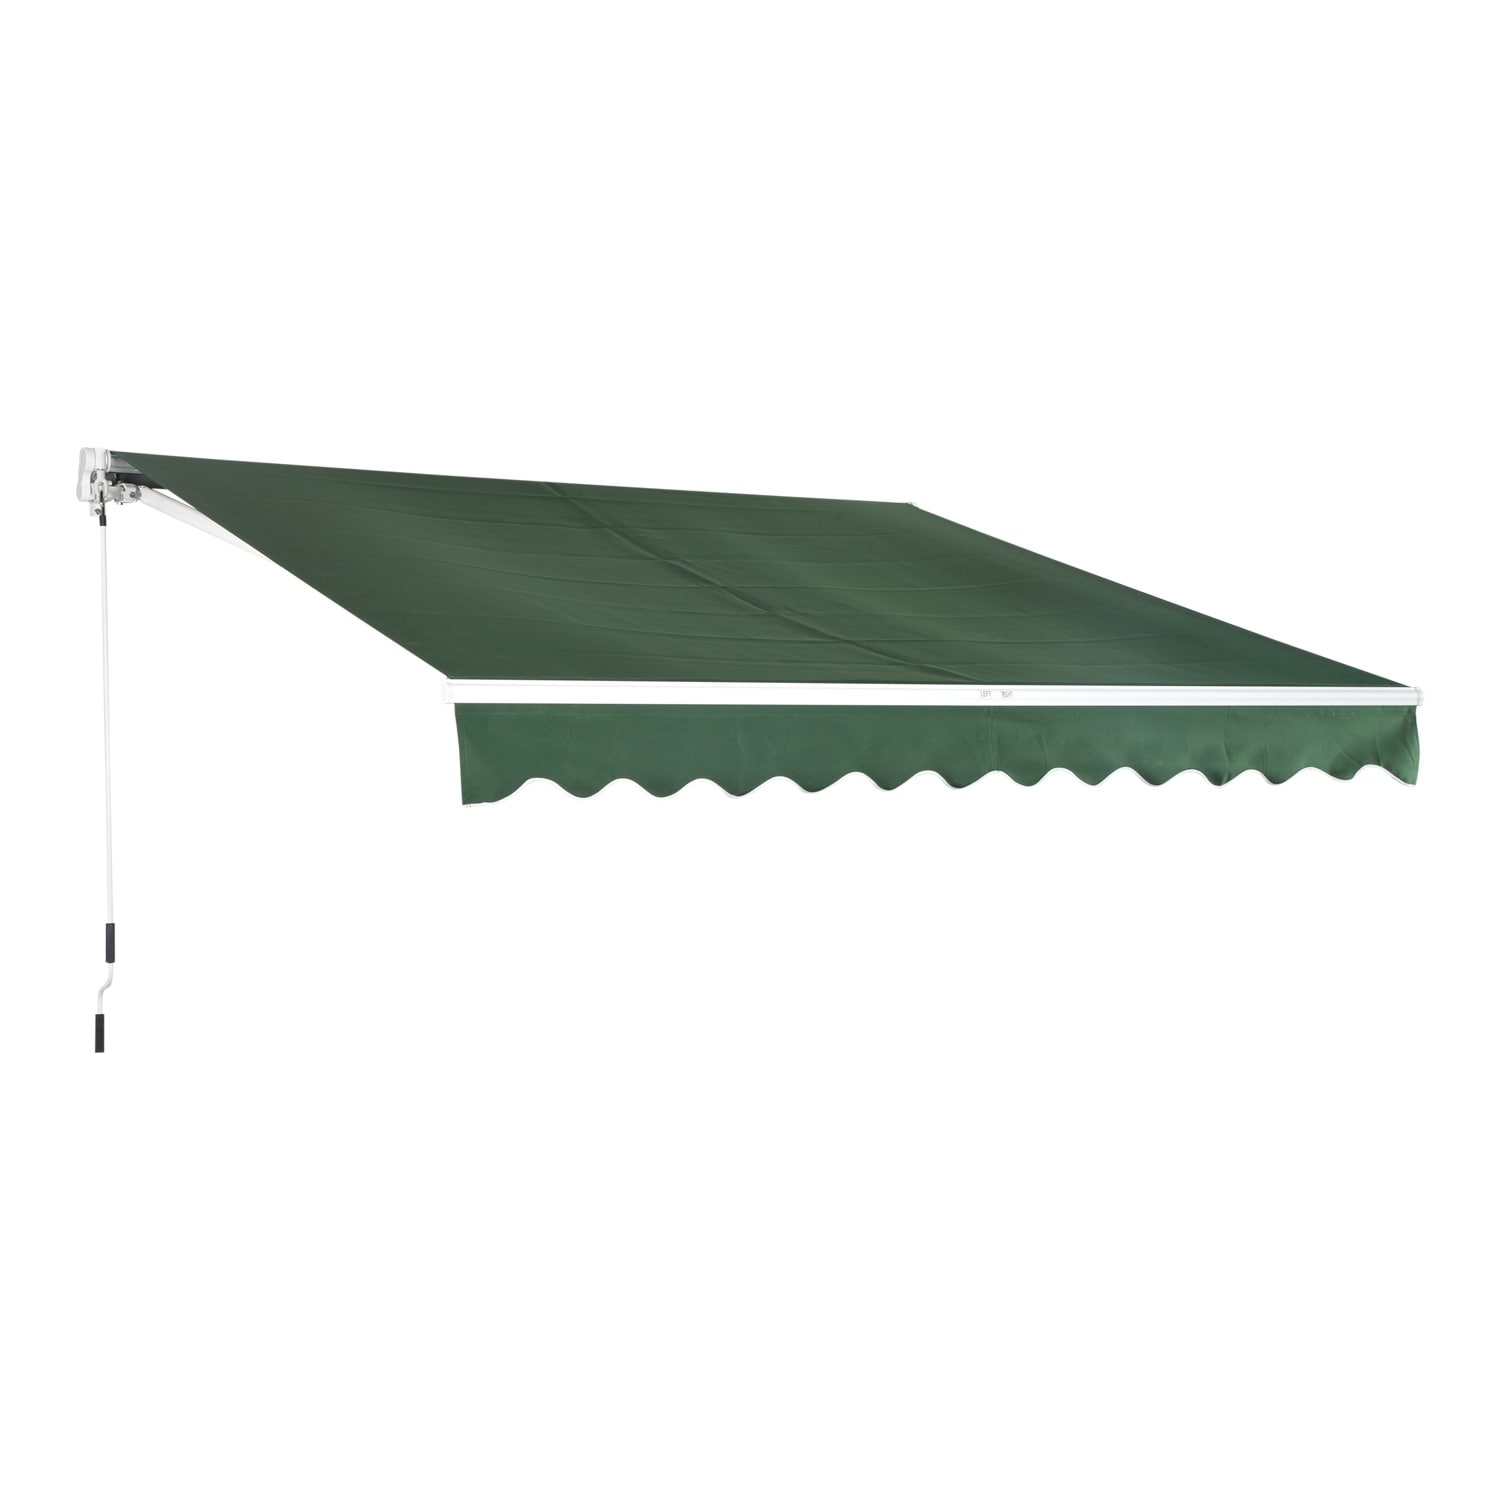 outdoor waterproof outsunny patio door living cover manual back canopy rain front shade awning shelter retractable sun